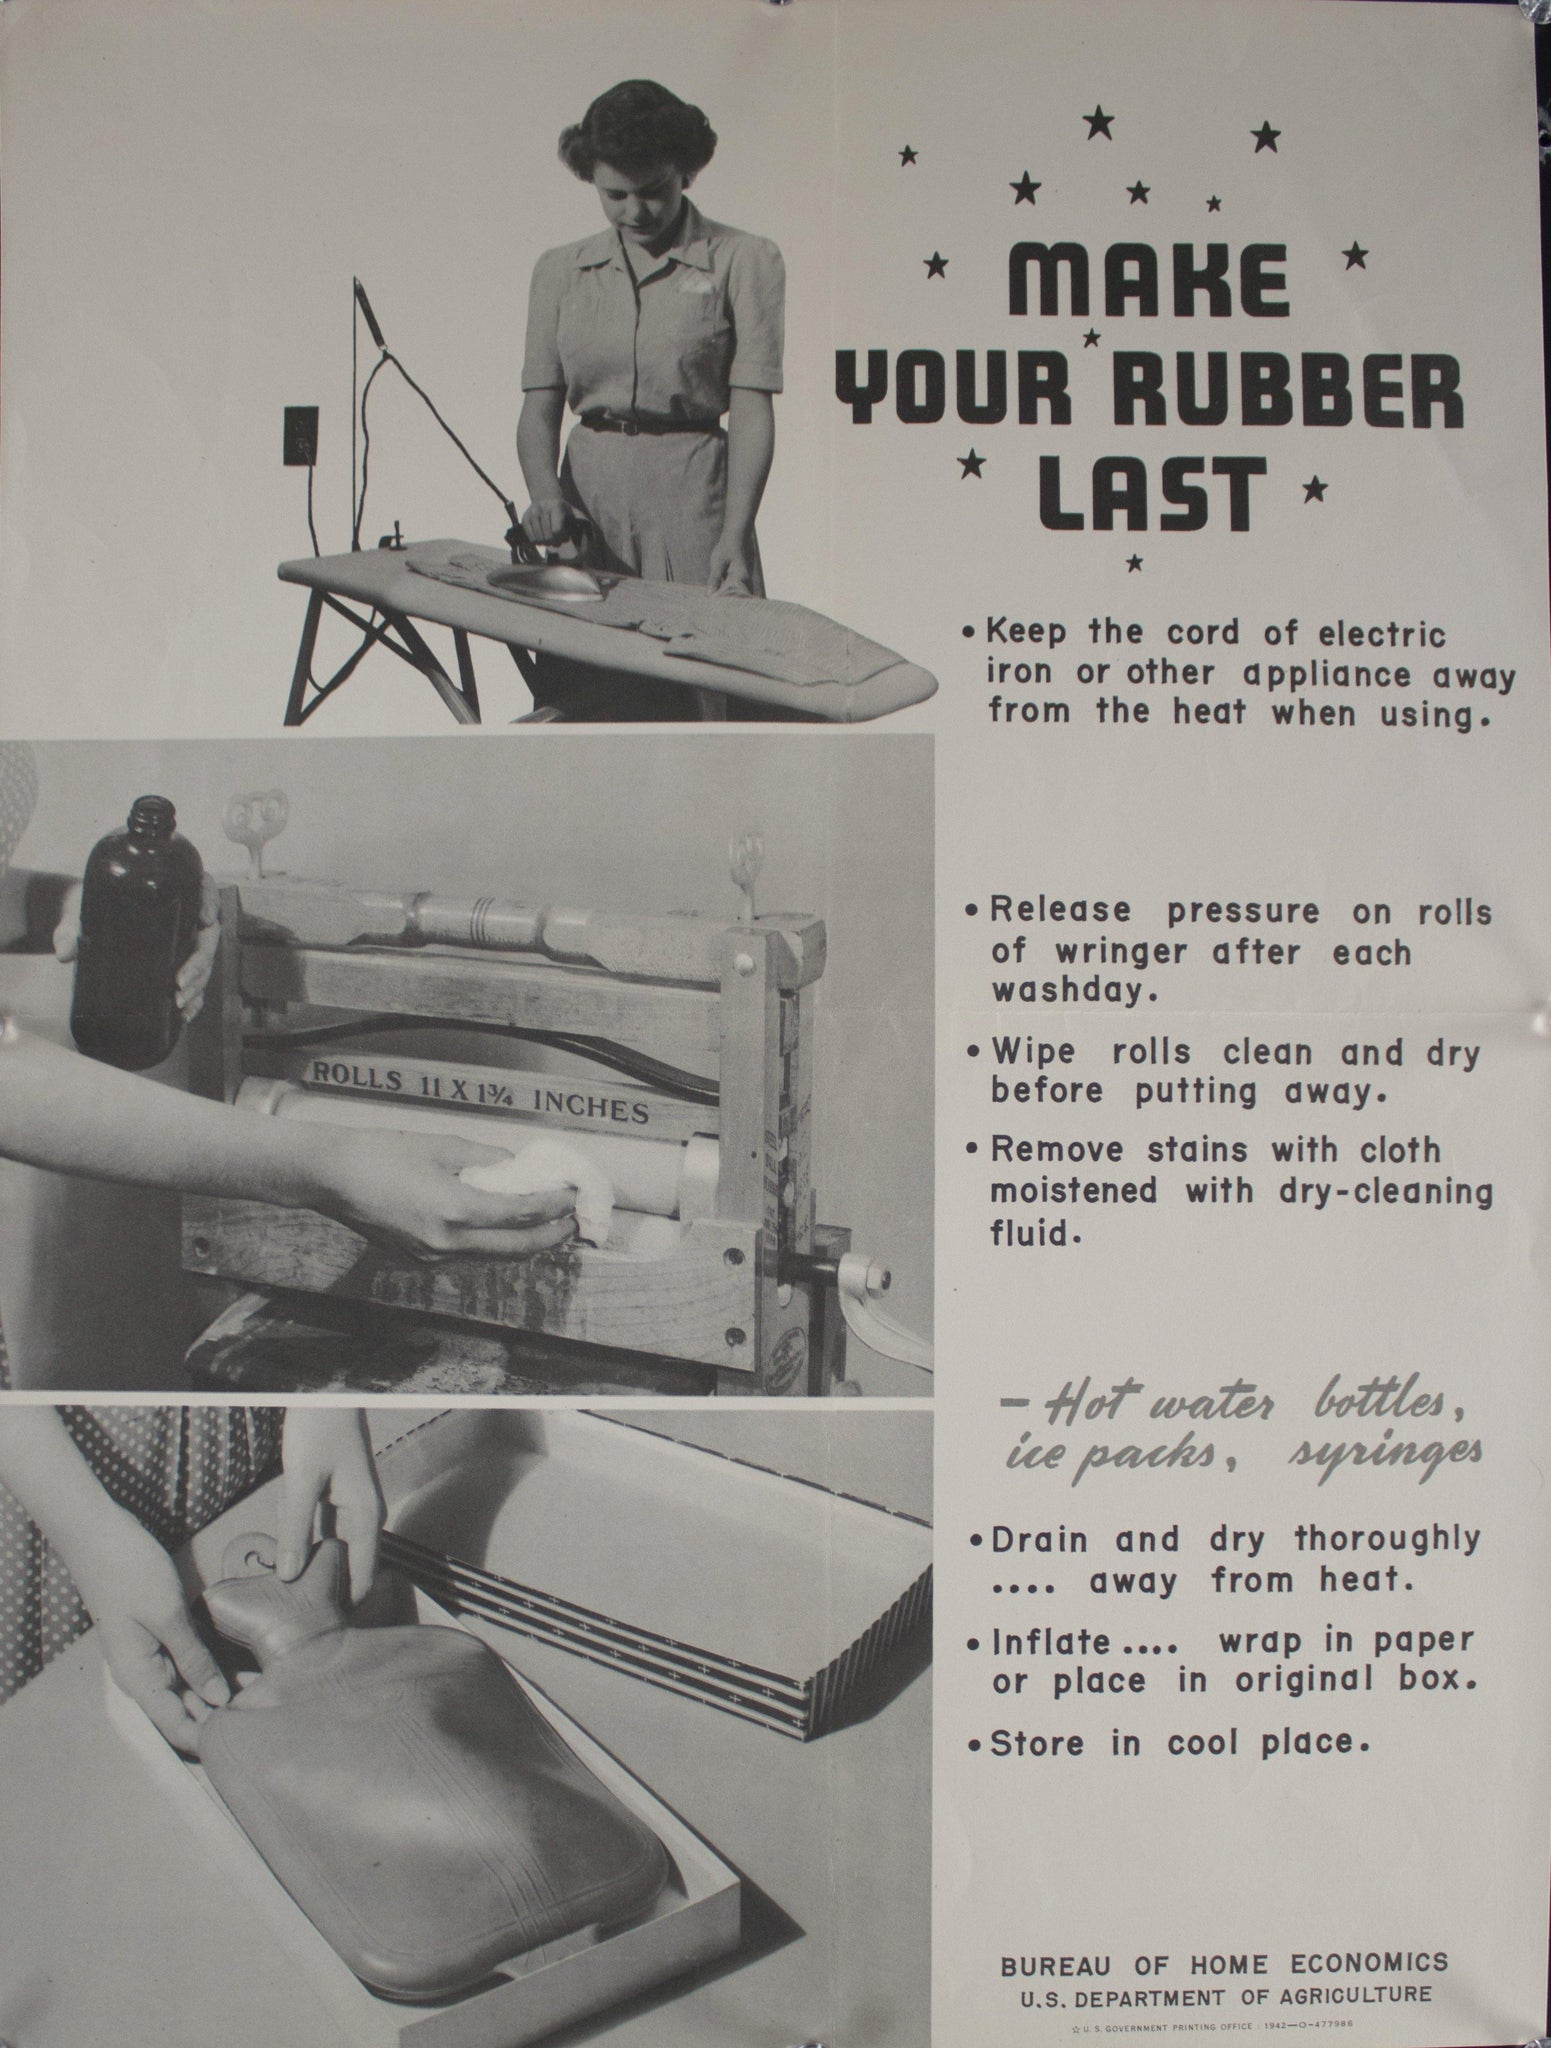 1942 Make Your Rubber Last